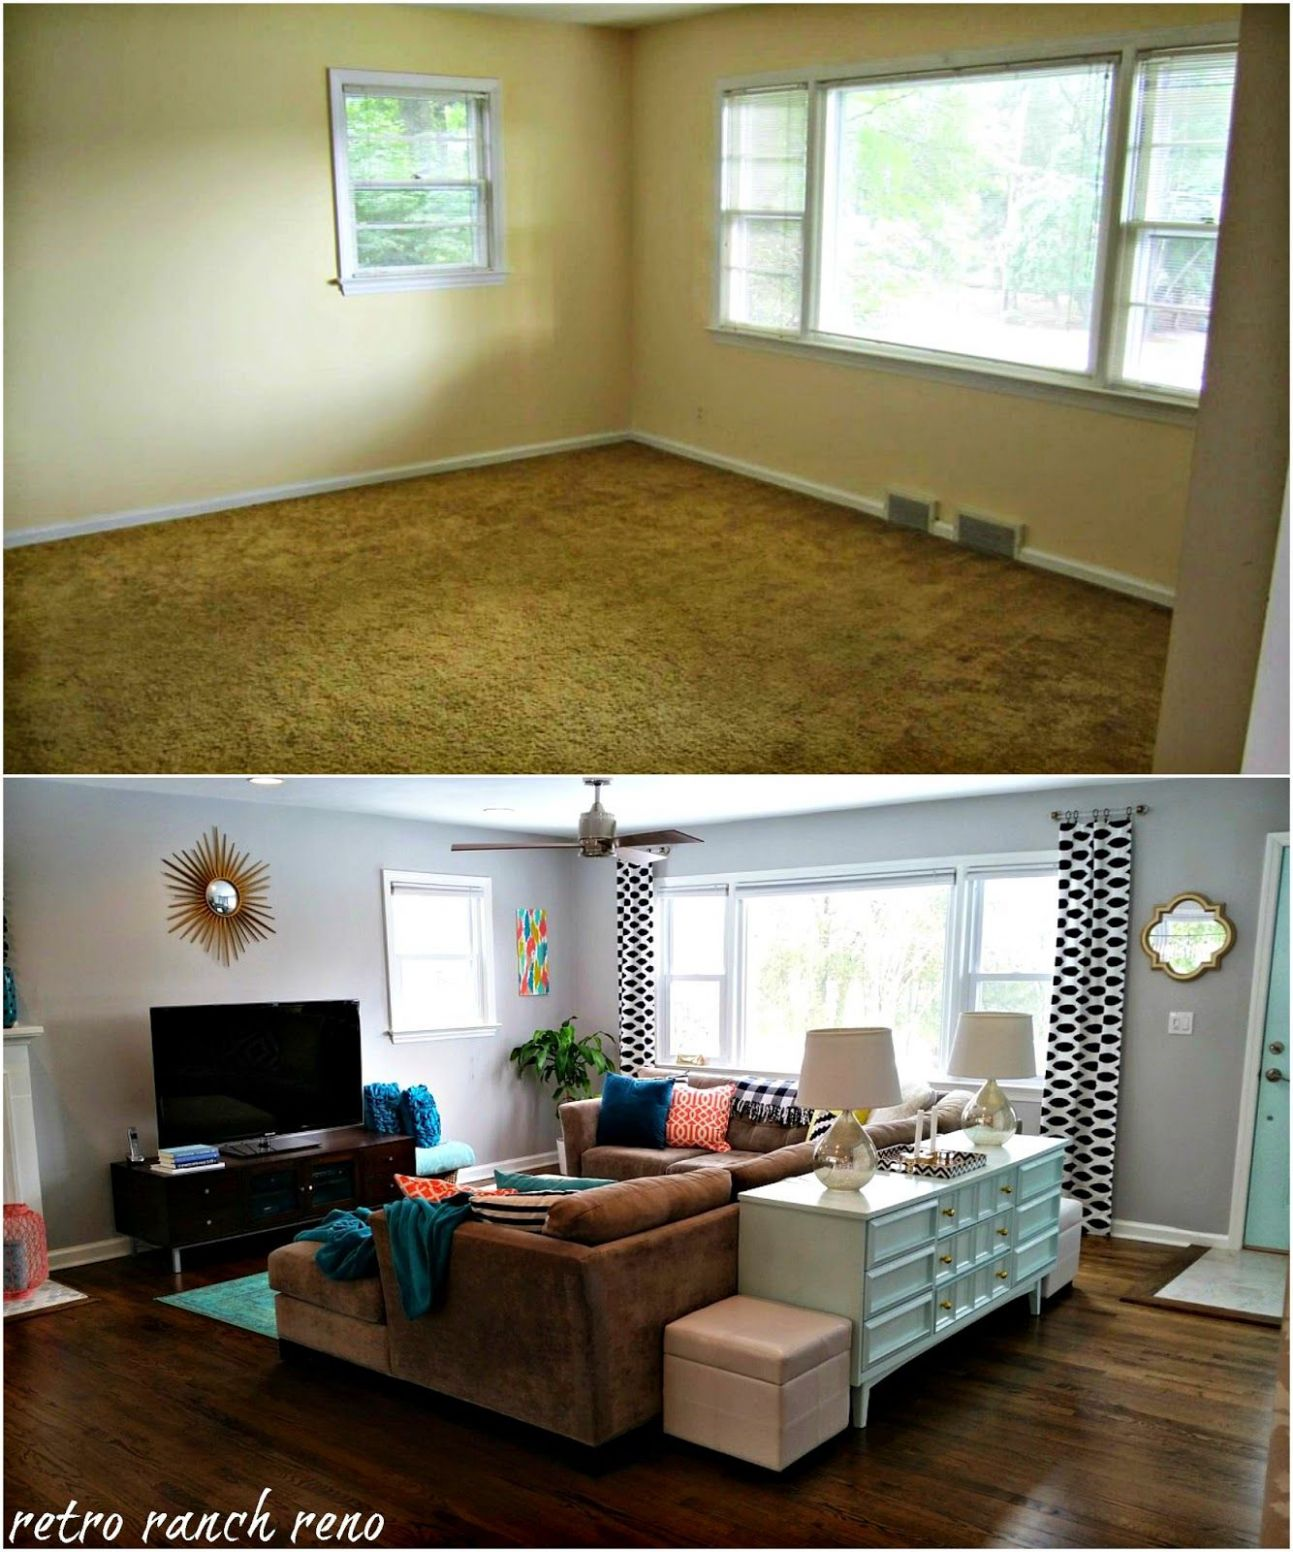 Our Rancher: Before & After - The Living Room. | Small living room ...